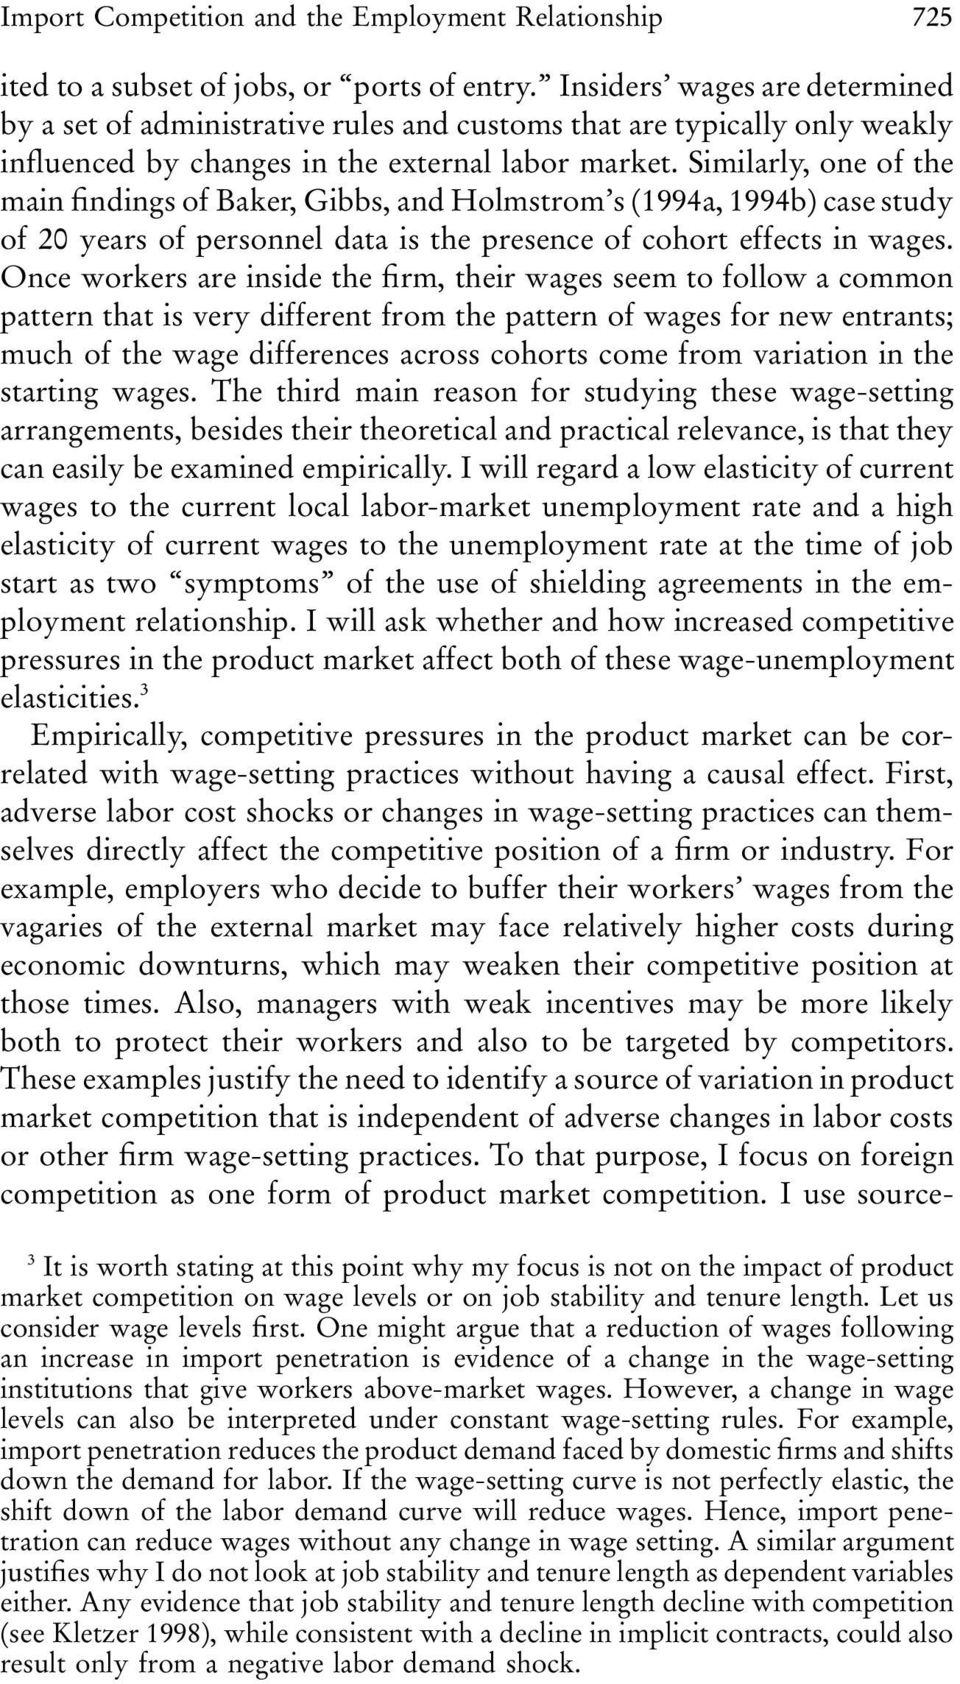 Similarly, one of the main findings of Baker, Gibbs, and Holmstrom s (1994a, 1994b) ase study of 20 years of personnel data is the presene of ohort effets in wages.